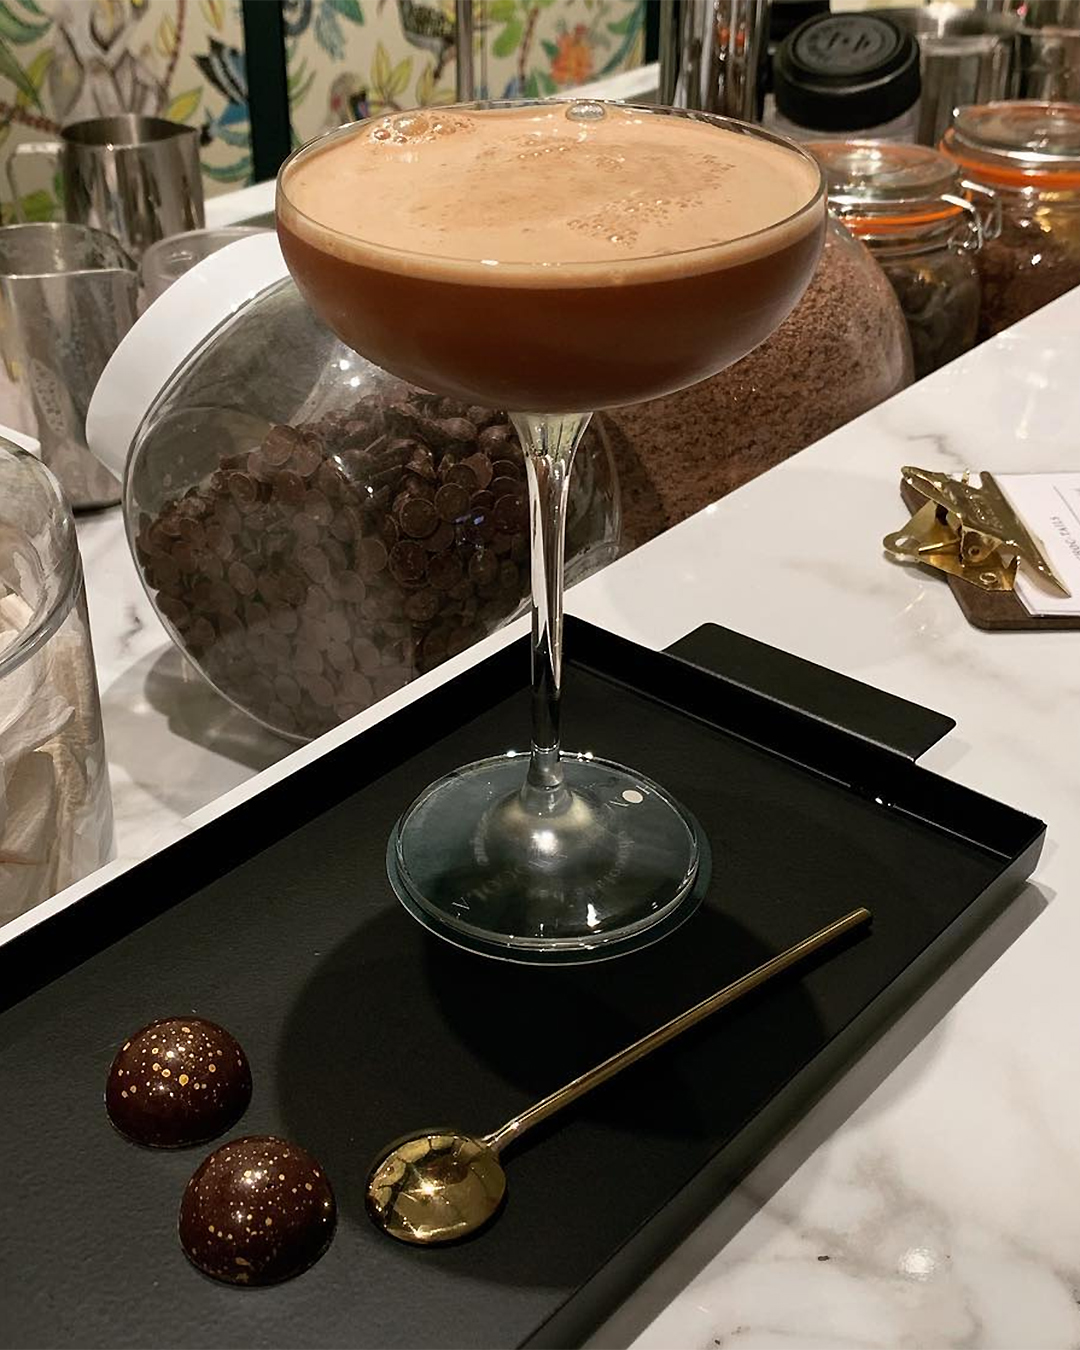 A hot chocolate looking classy in a tall glass at the chocolate bar at Commercial bay's Honest Chocolat.